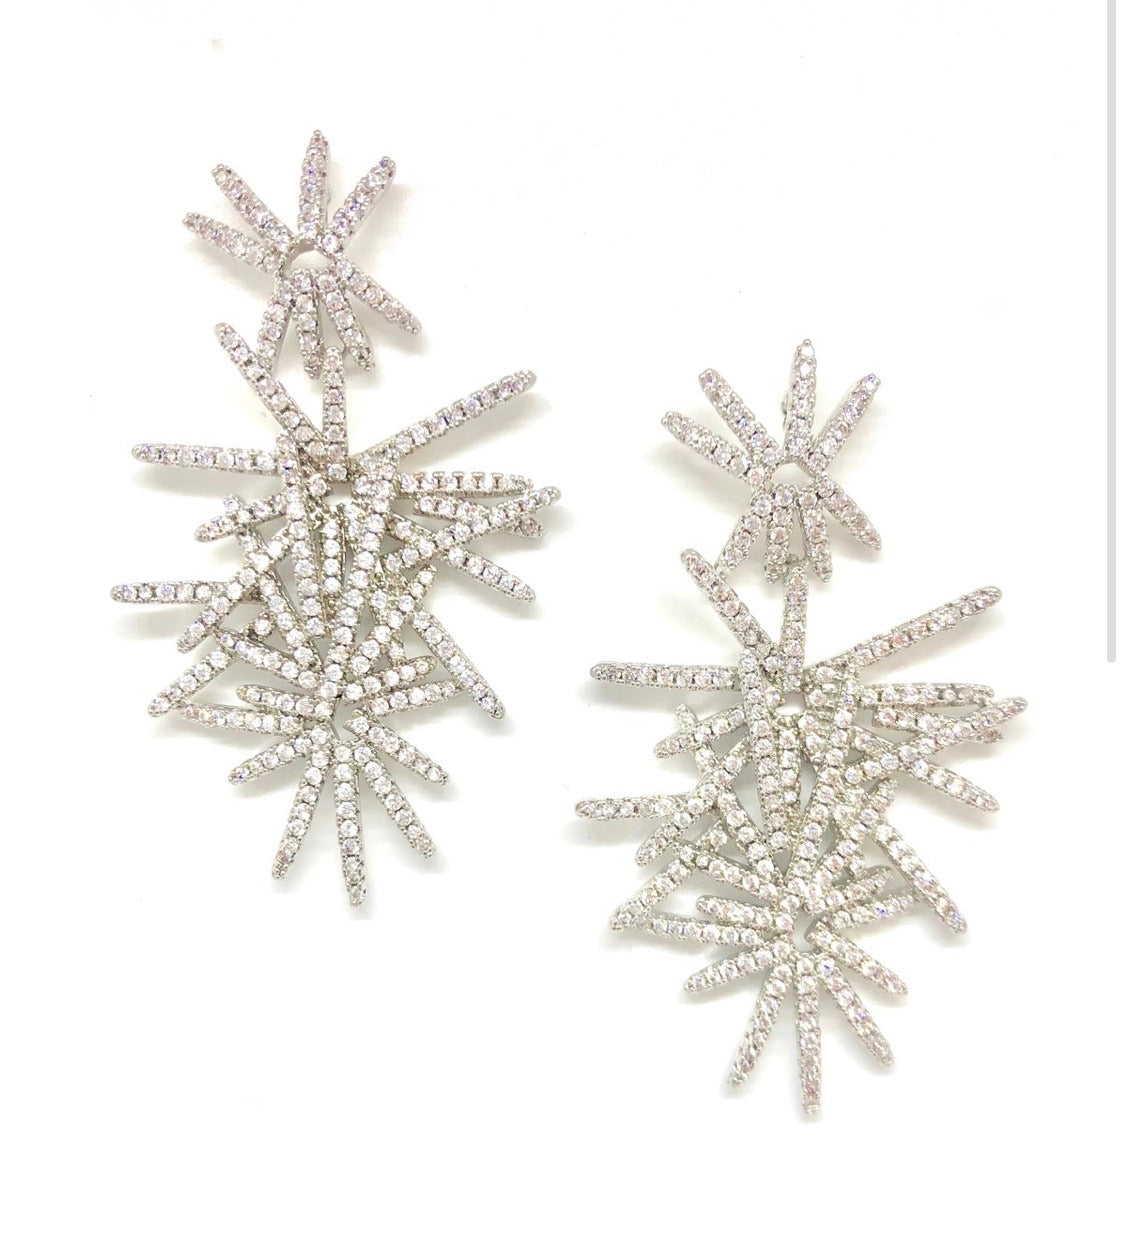 Silver Sparkler Earrings